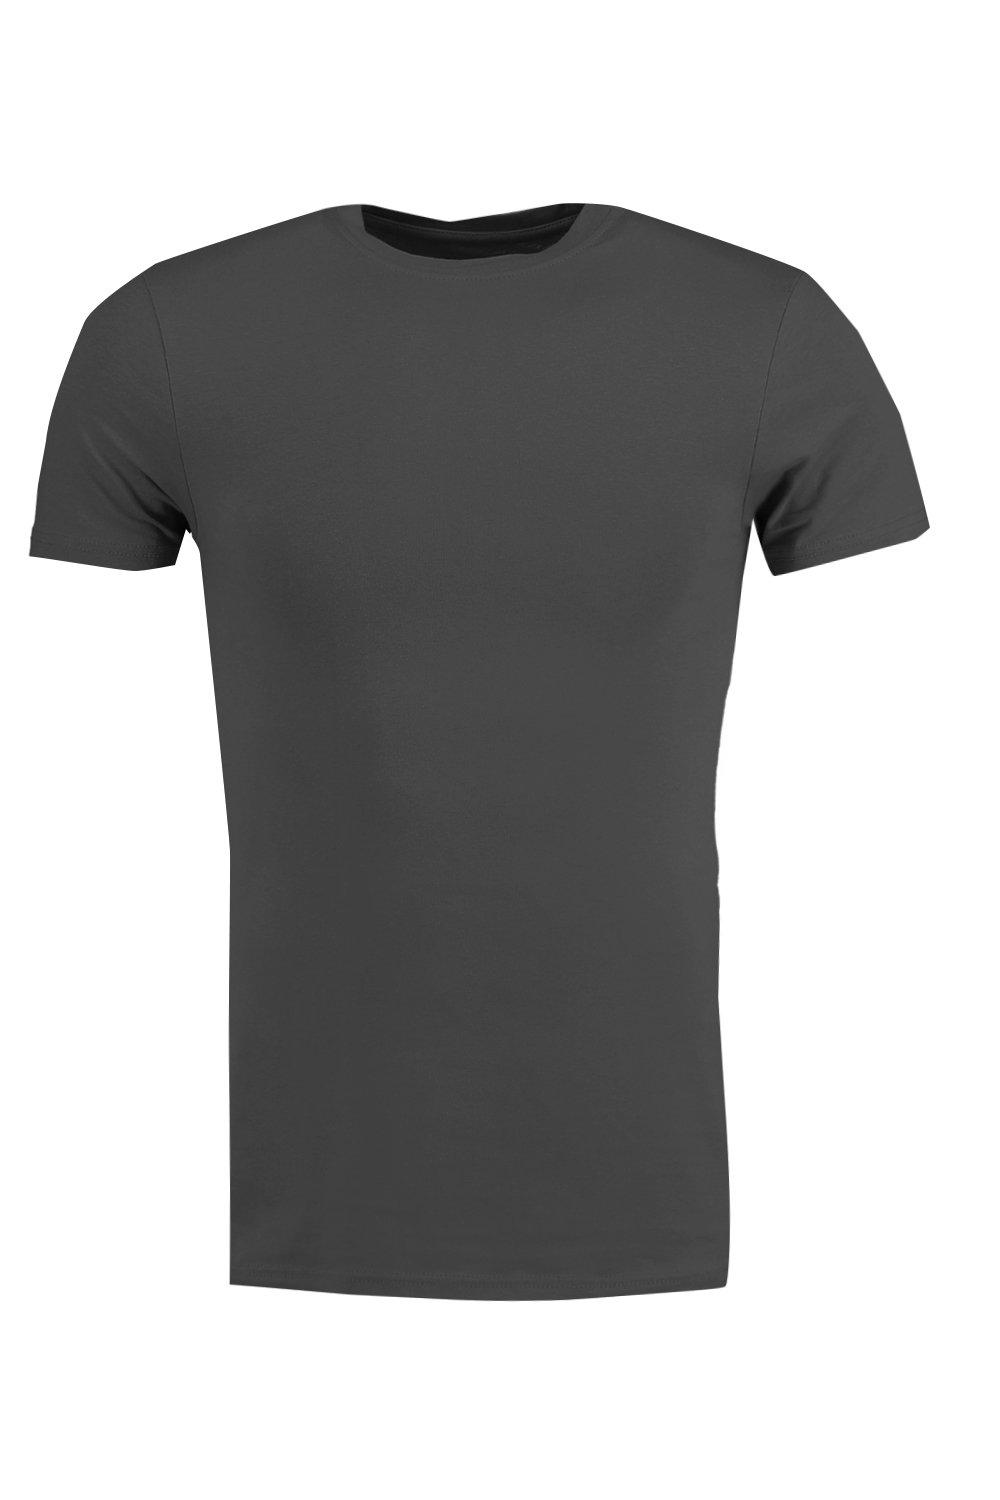 boohooMAN black Muscle Fit Crew Neck T Shirt